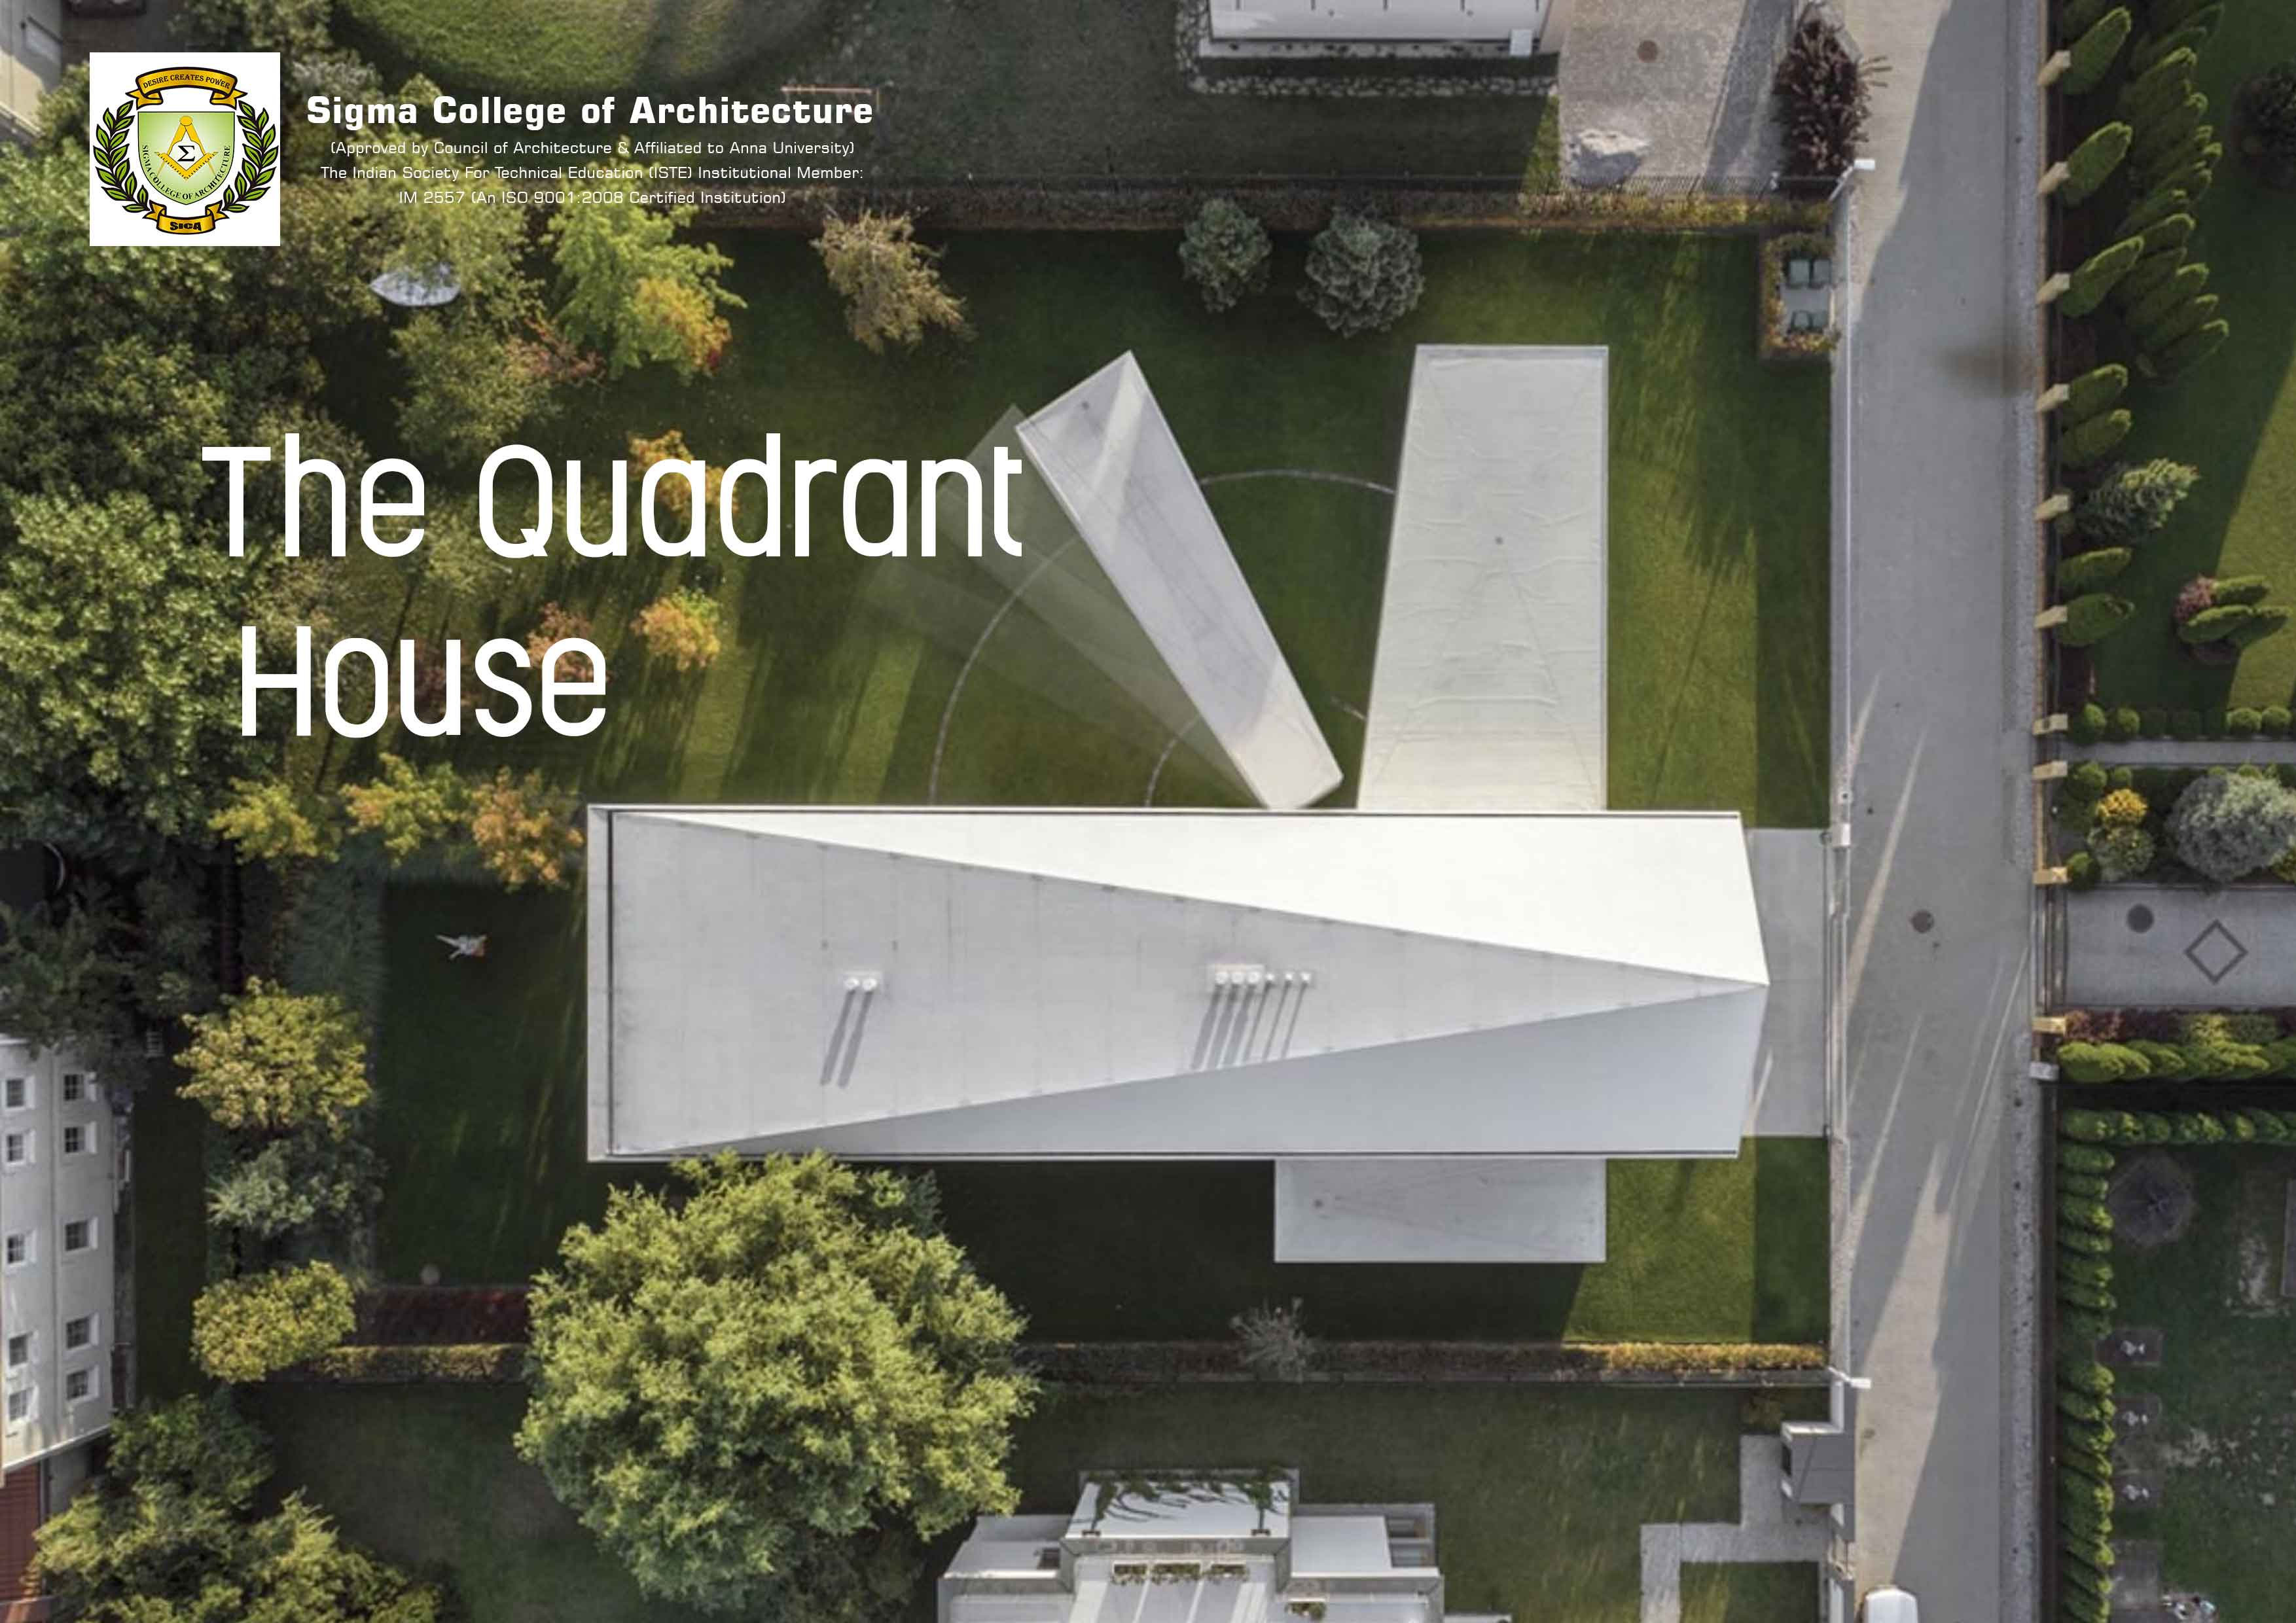 The Quadrant House